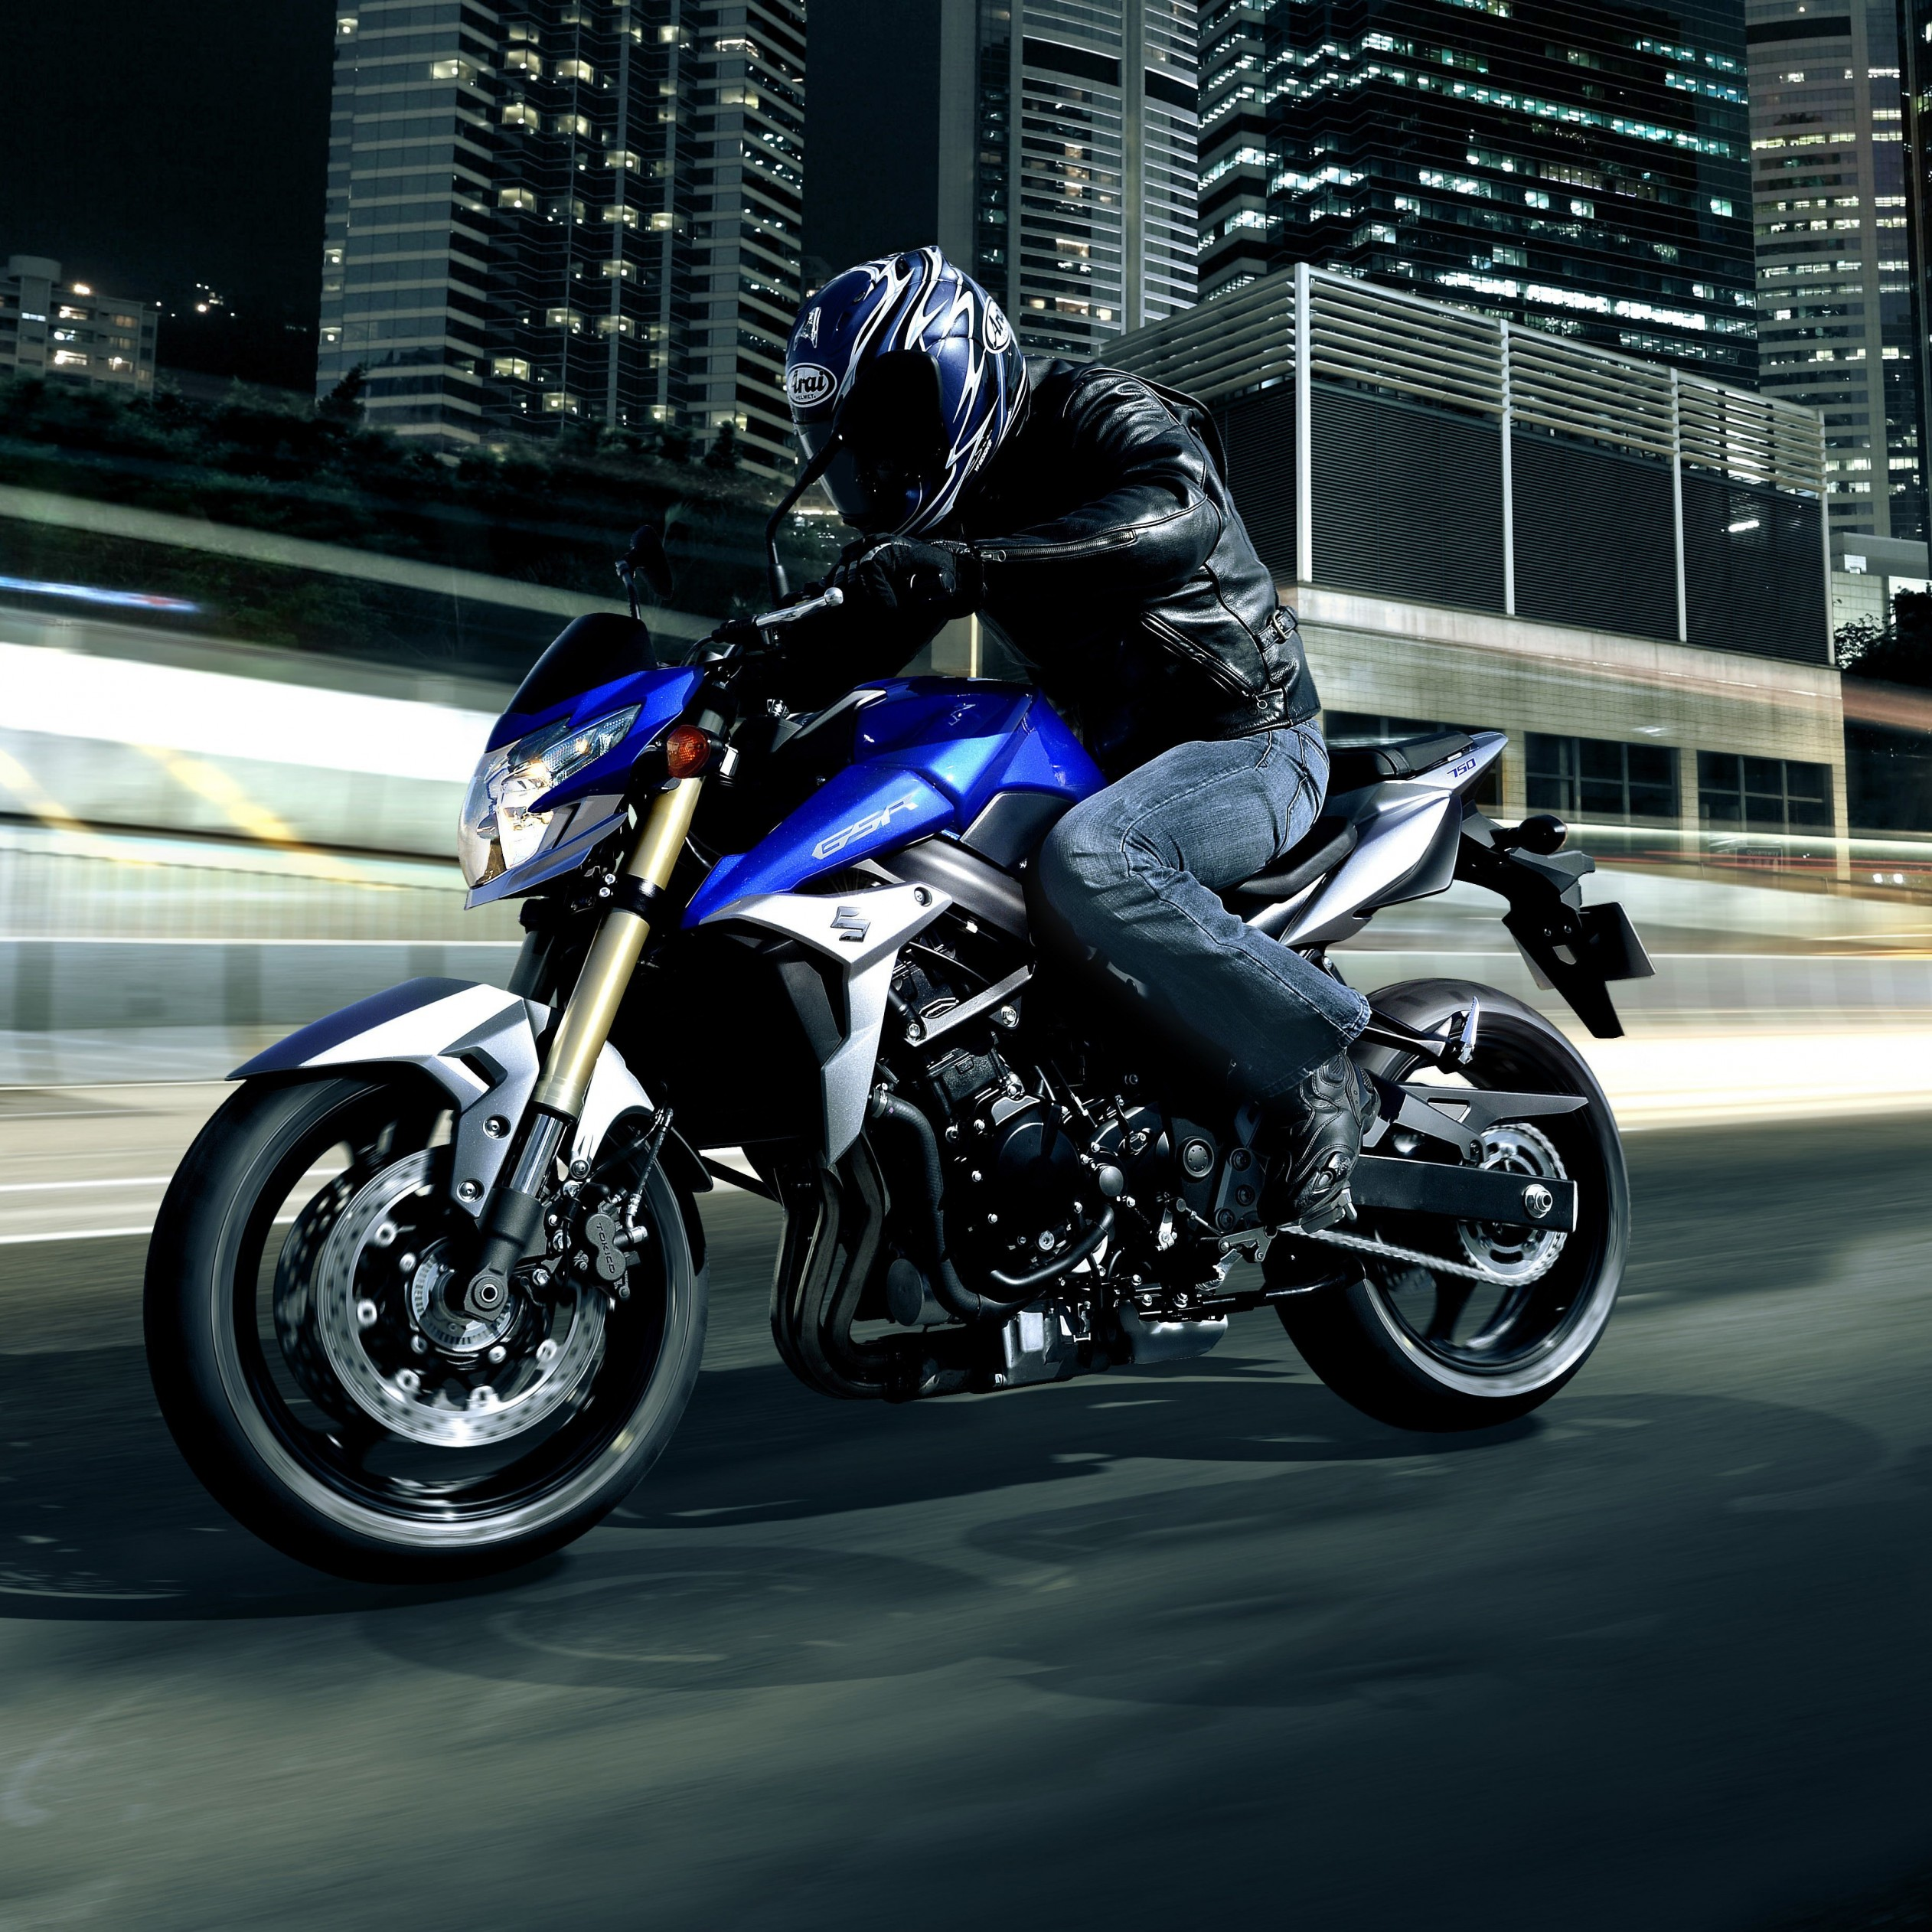 Suzuki GSX-R750 Wallpaper for Apple iPad mini 2